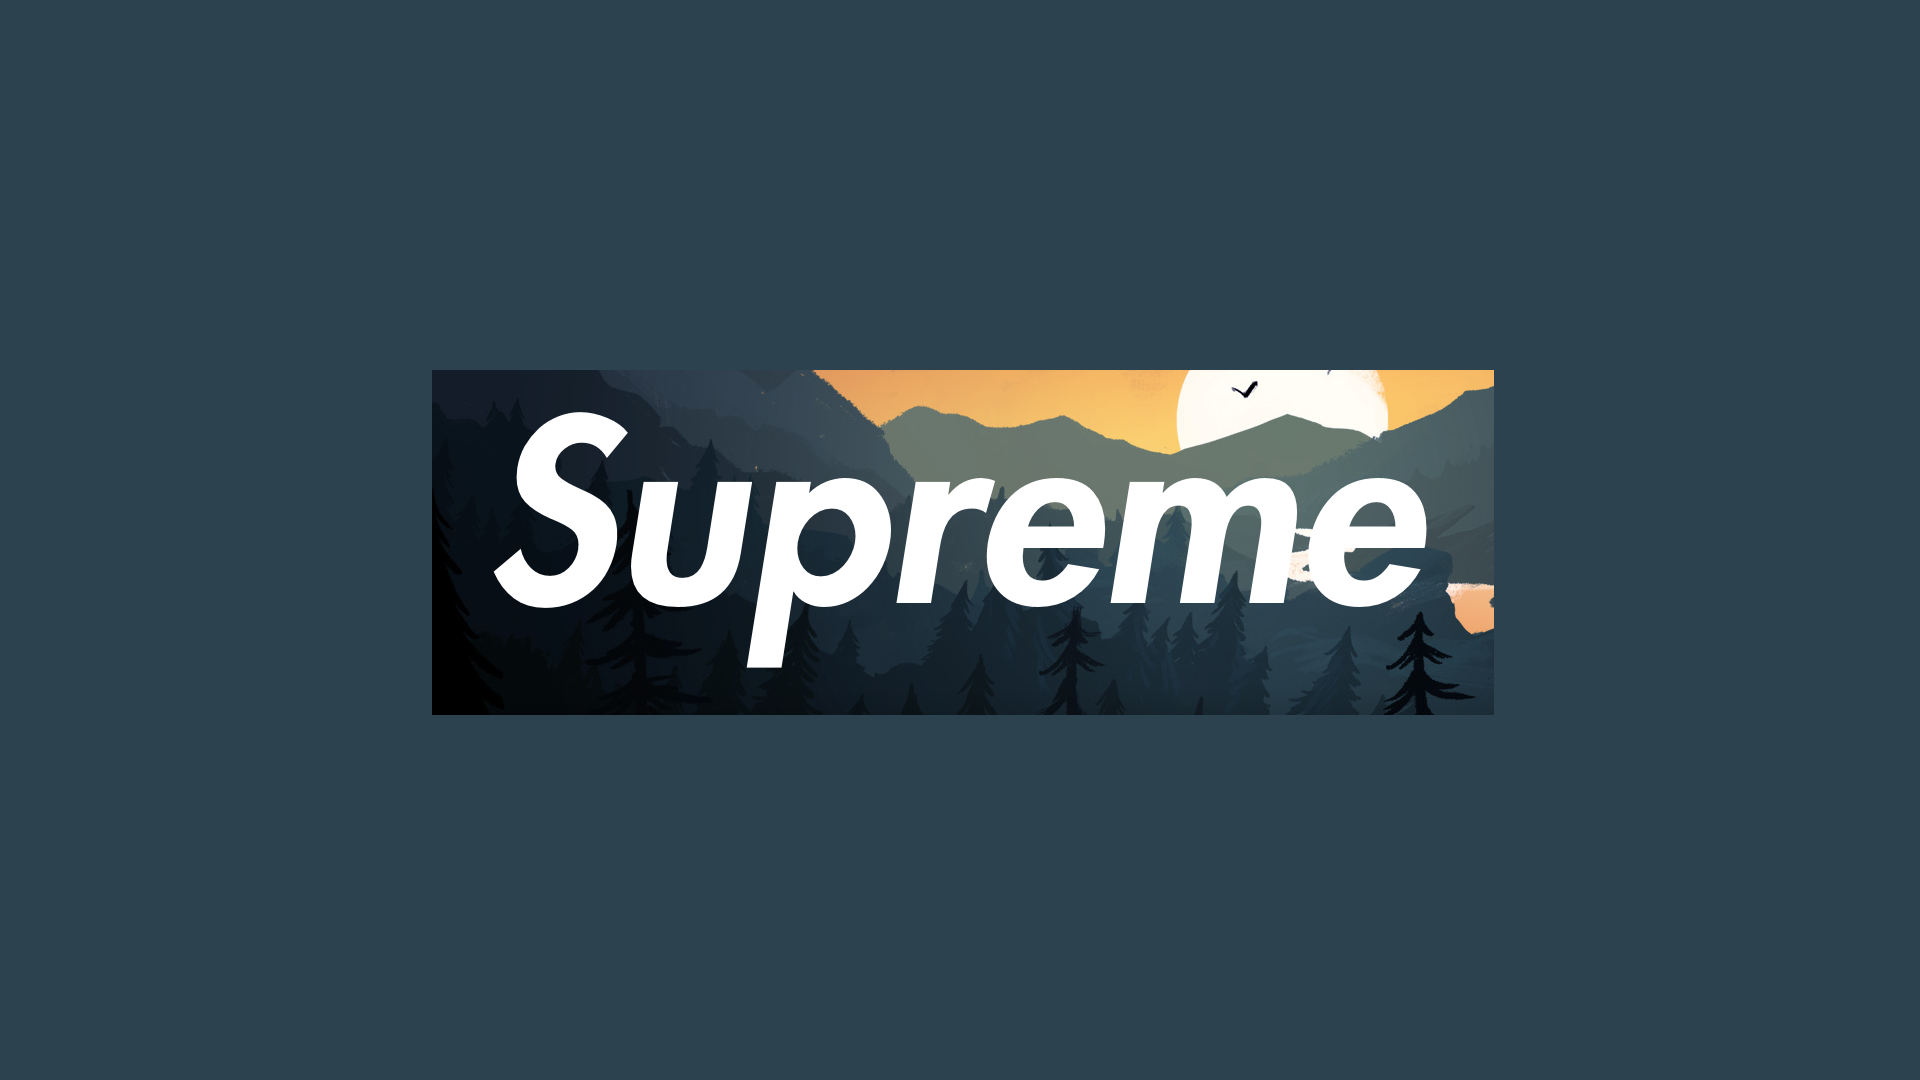 Supreme X Firewatch 1920x1080 Supreme Wallpaper Laptop Wallpaper Supreme Wallpaper Hd